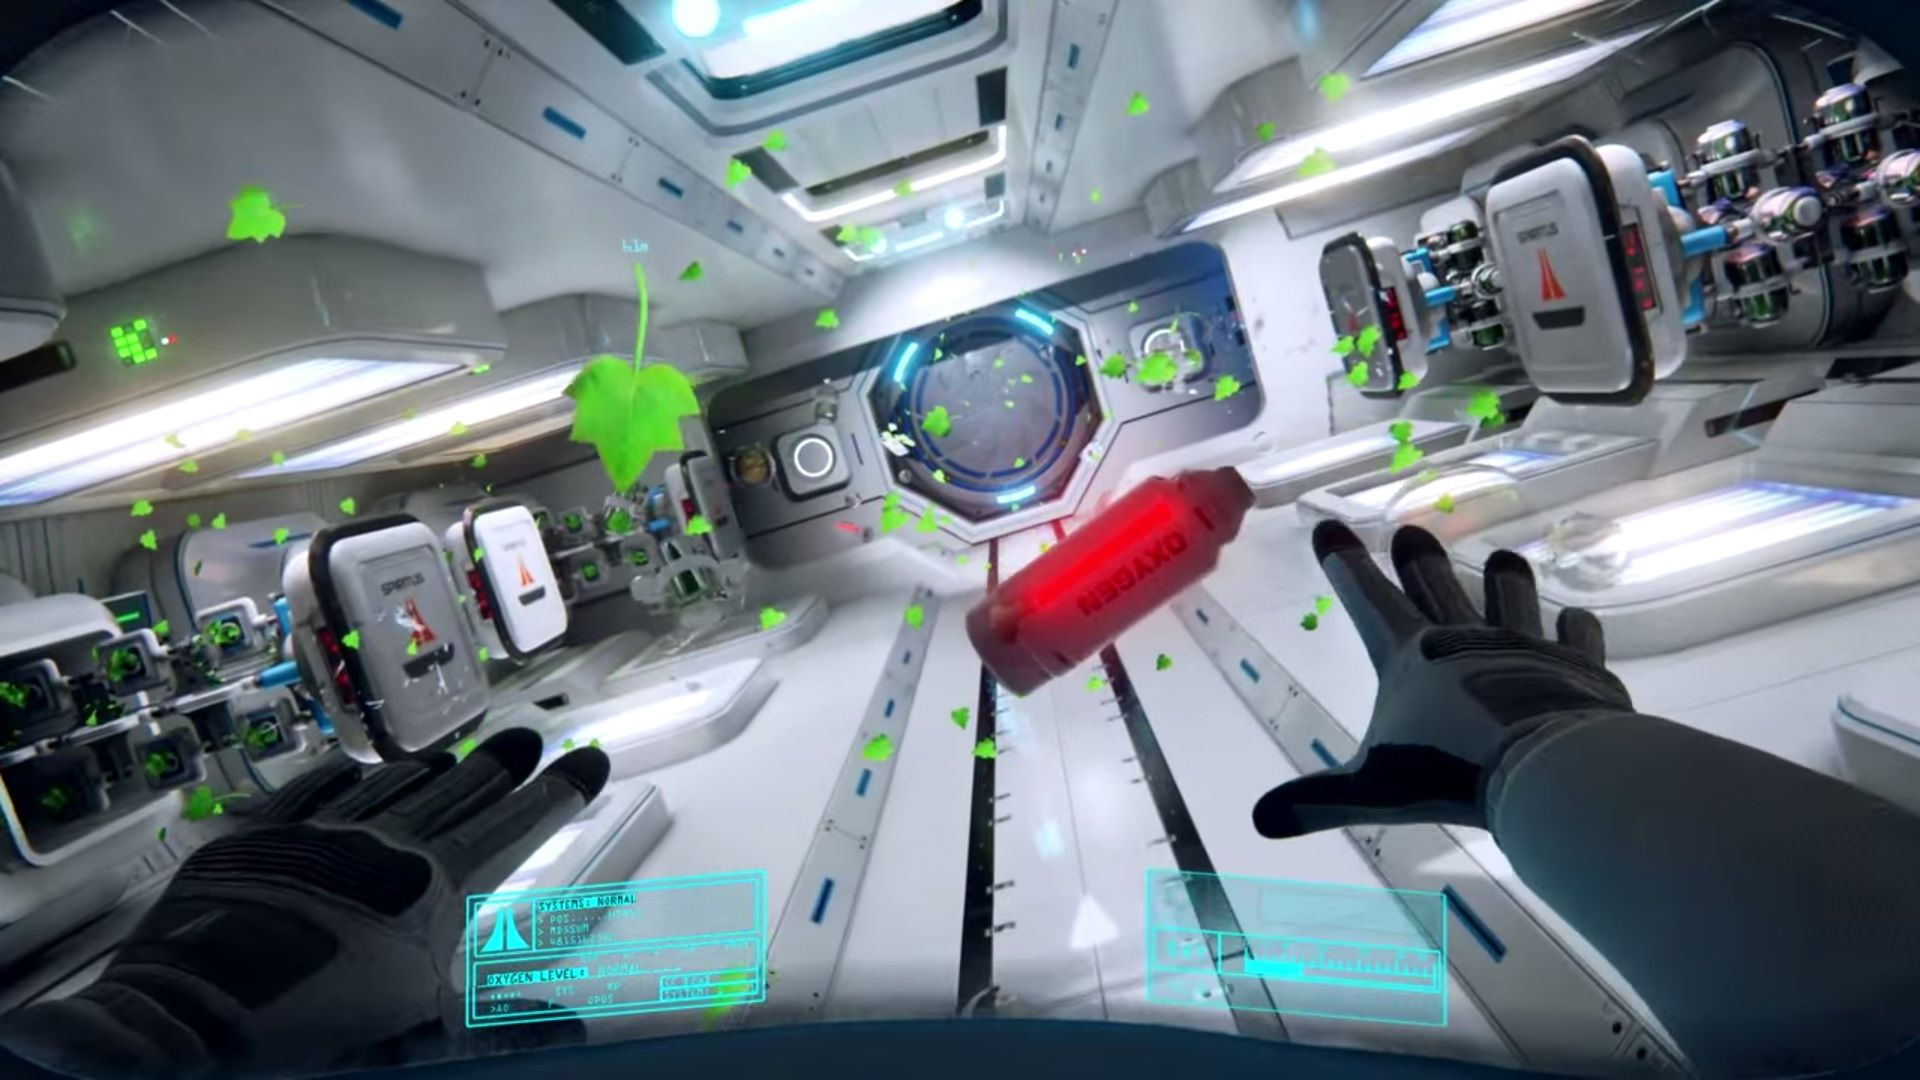 ADR1FT Unreal Engine 4 powered space survival game